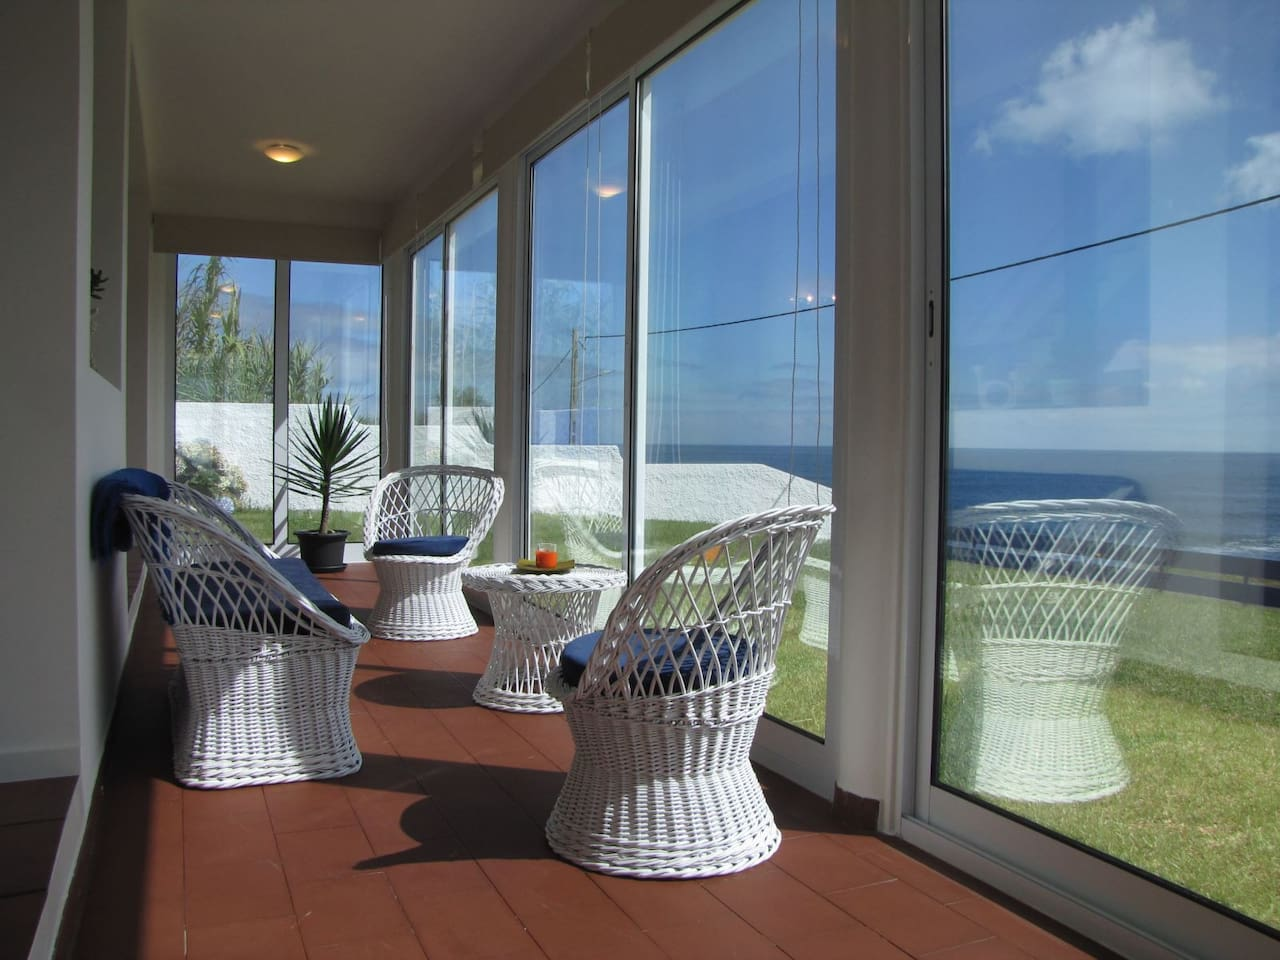 Sunroom facing ocean views